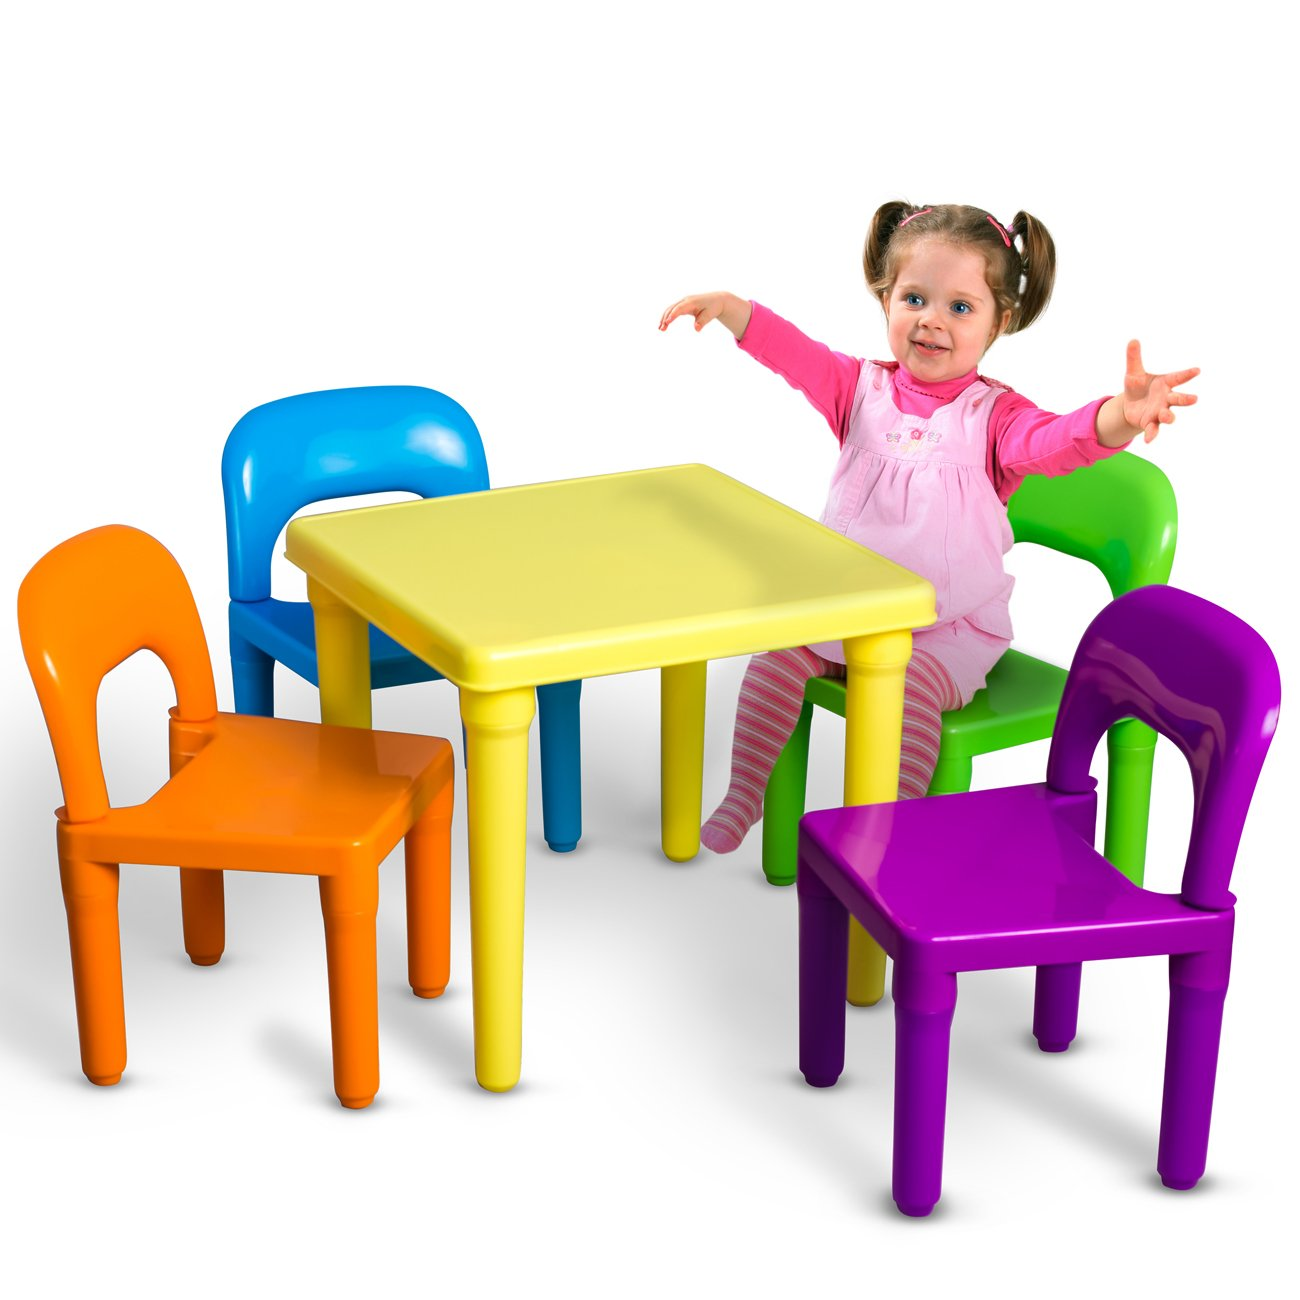 Amazon.com OxGord PLTC-01 Kids Plastic Table and Chairs Set (4 Chairs and 1 Table) Toys u0026 Games  sc 1 st  Amazon.com & Amazon.com: OxGord PLTC-01 Kids Plastic Table and Chairs Set (4 ...